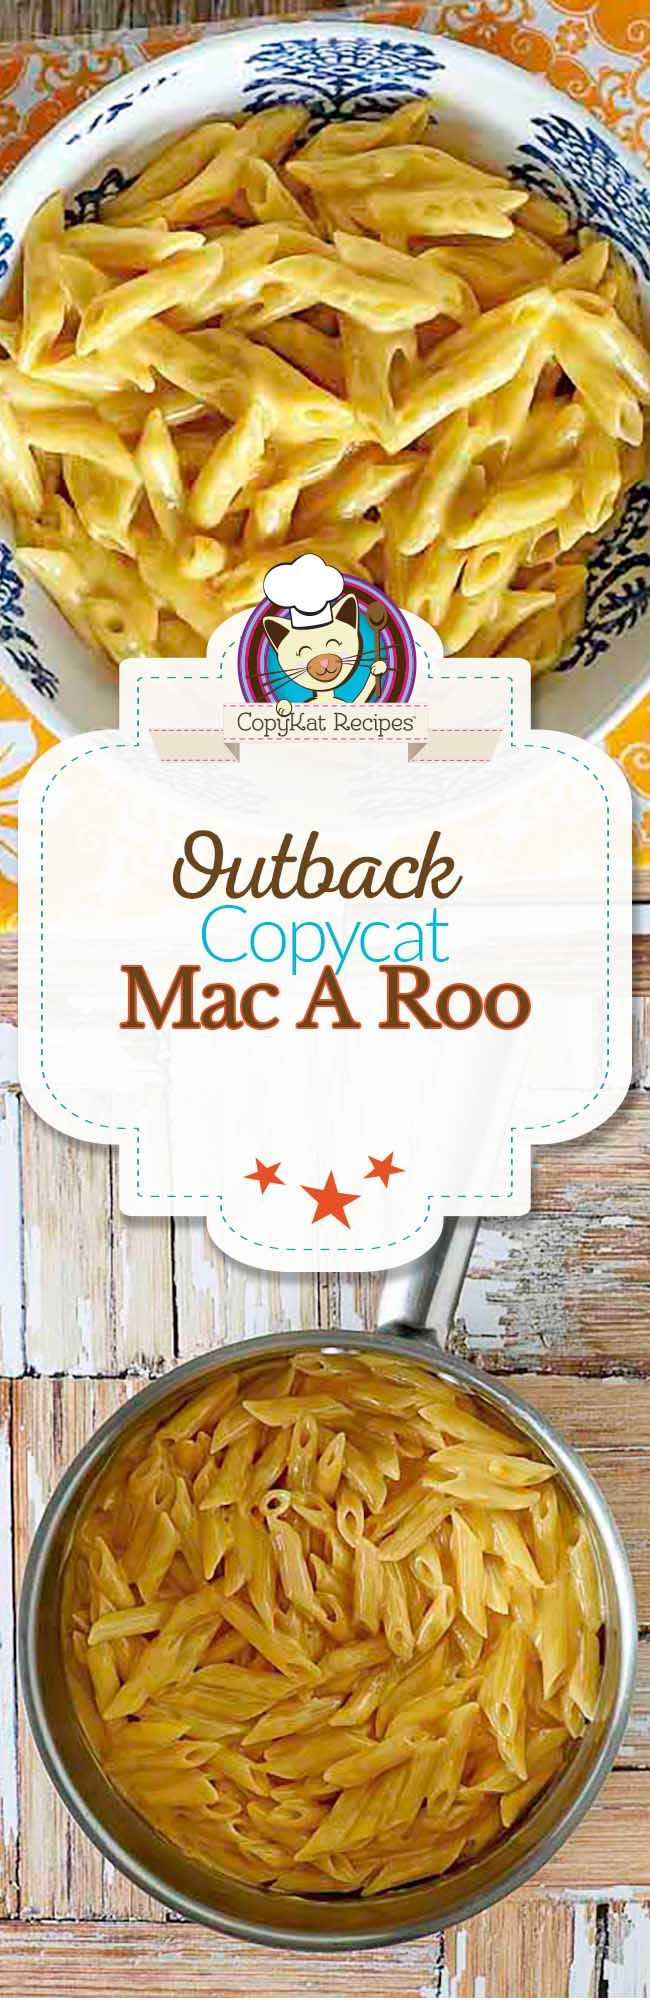 Copycat Outback Steakhouse Mac A Roo Recipe Recipes Pinterest